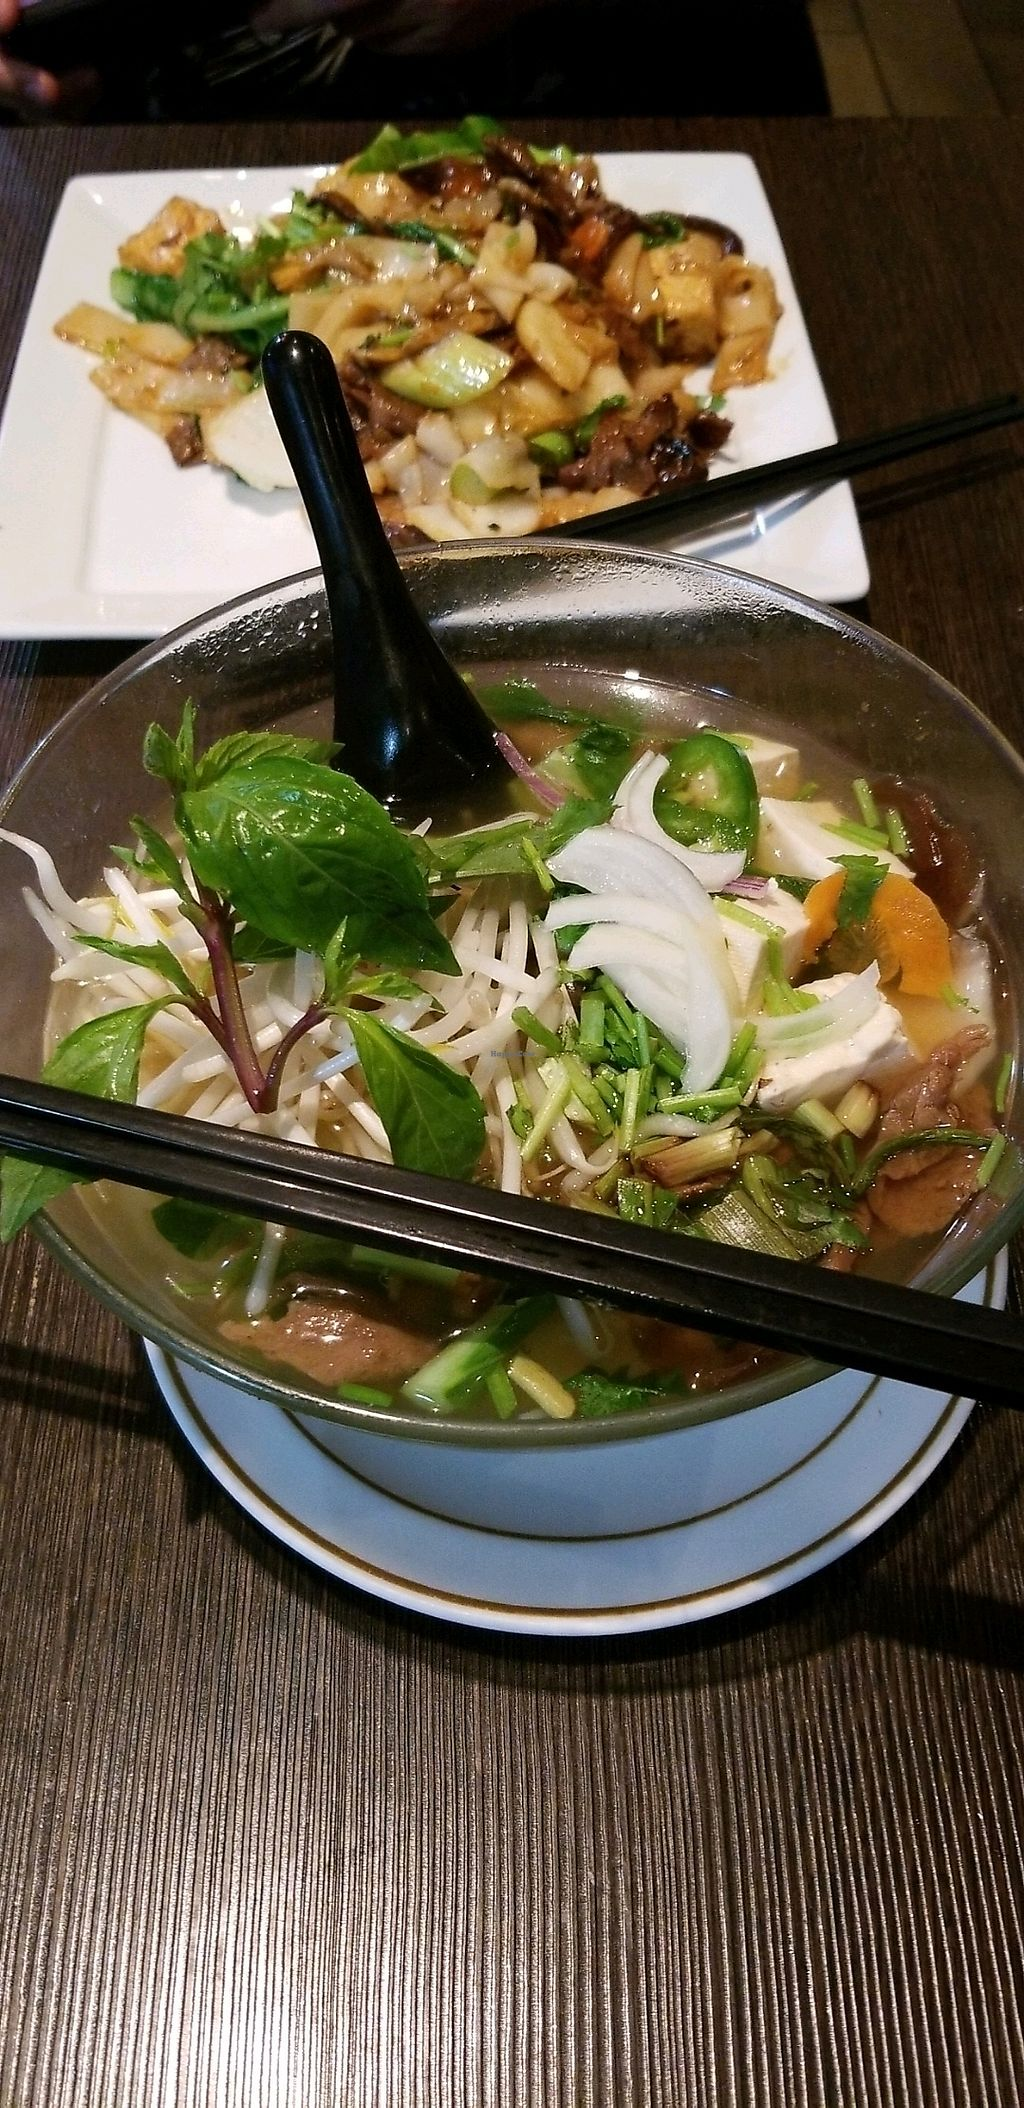 """Photo of Andy Nguyen's  by <a href=""""/members/profile/KatieMac1185"""">KatieMac1185</a> <br/>Pho (front), Chow Fun (back). Yum! <br/> April 9, 2018  - <a href='/contact/abuse/image/5021/382758'>Report</a>"""